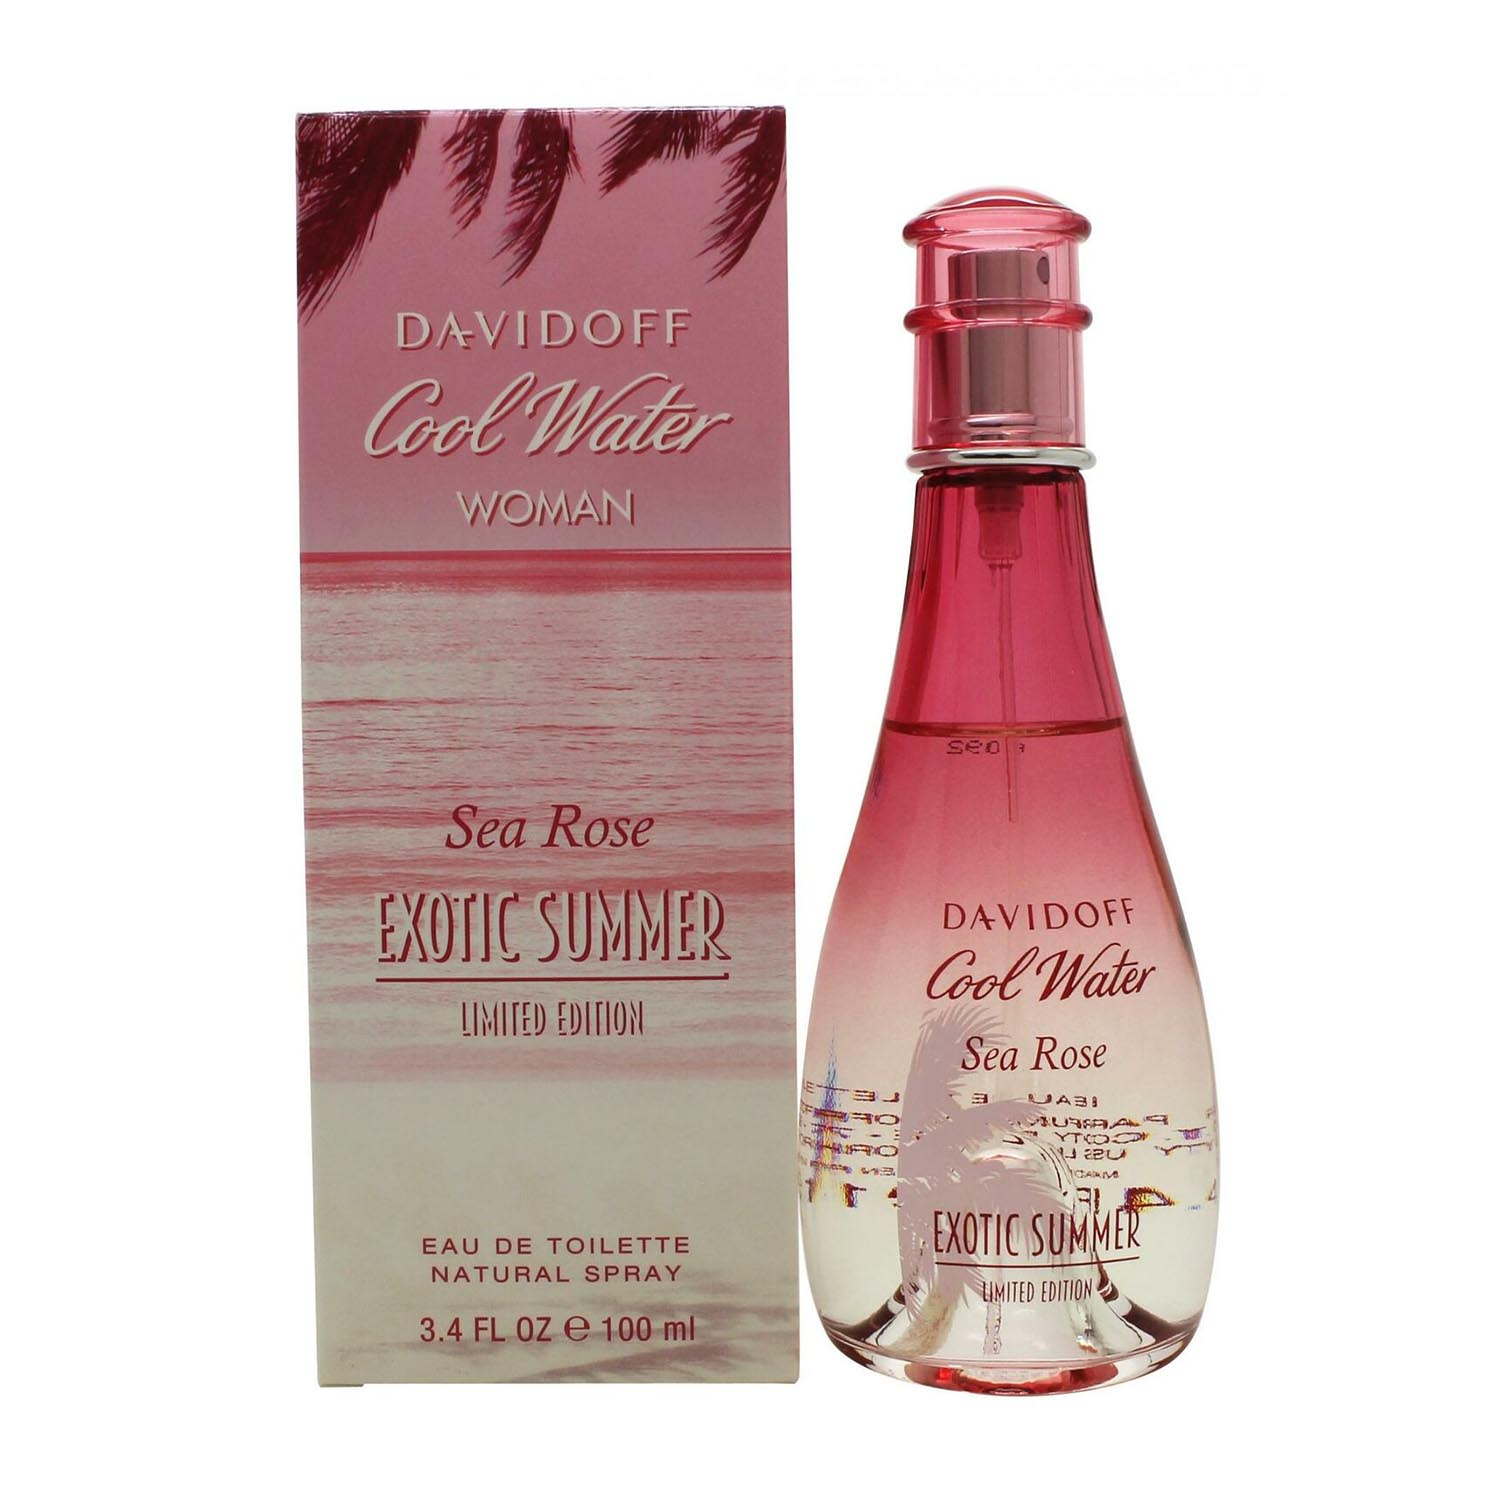 Davidoff cool water woman sea rose exotic summer eau de toilette 100ml vaporizador edicion limitada